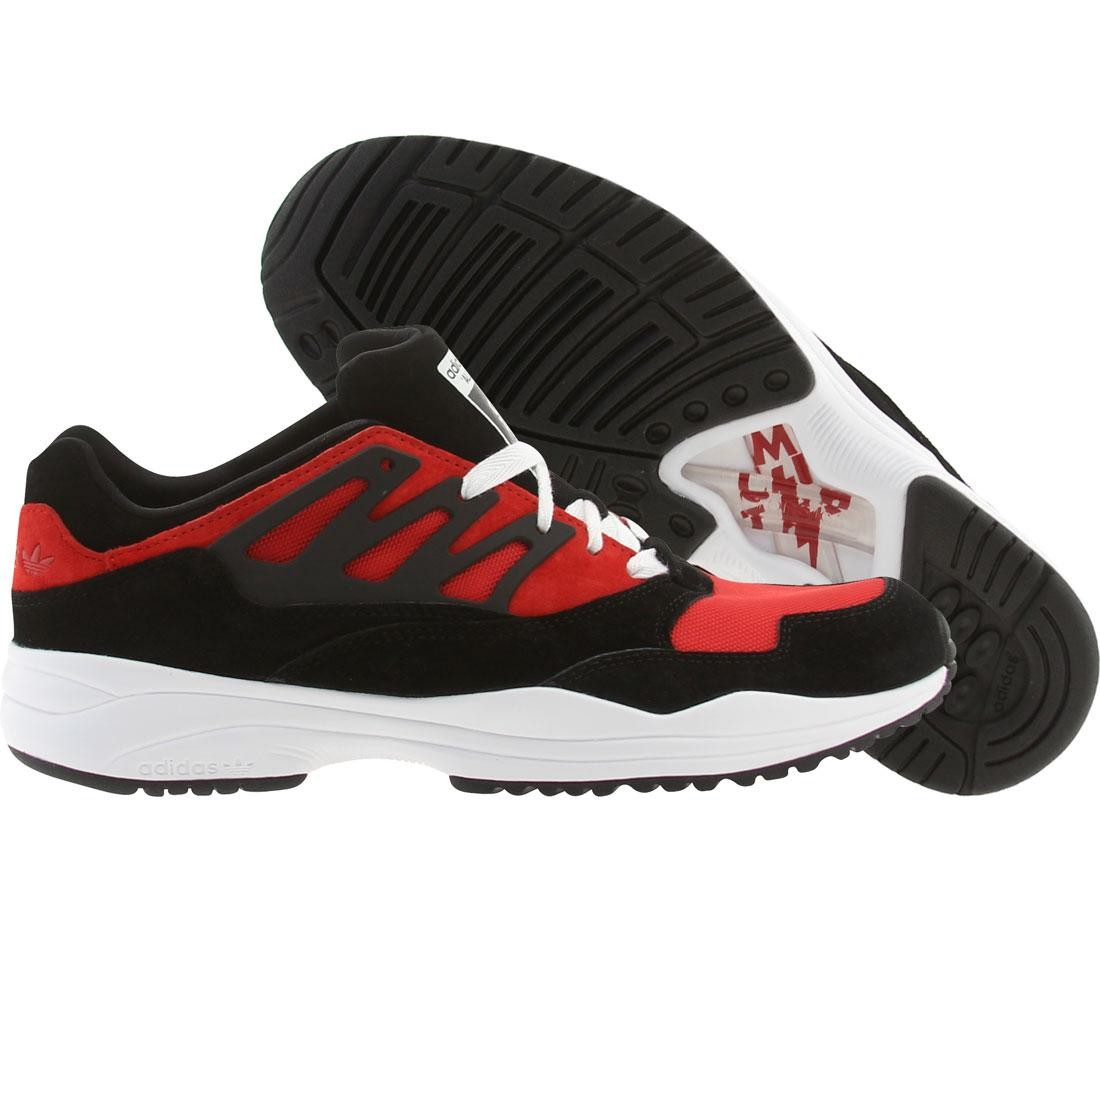 half off 4cc6a e9c8e Adidas Men MCN Torsion Allegra 84-Lab - Kazuki Kuraishi (red / colred /  black / runninwhite)